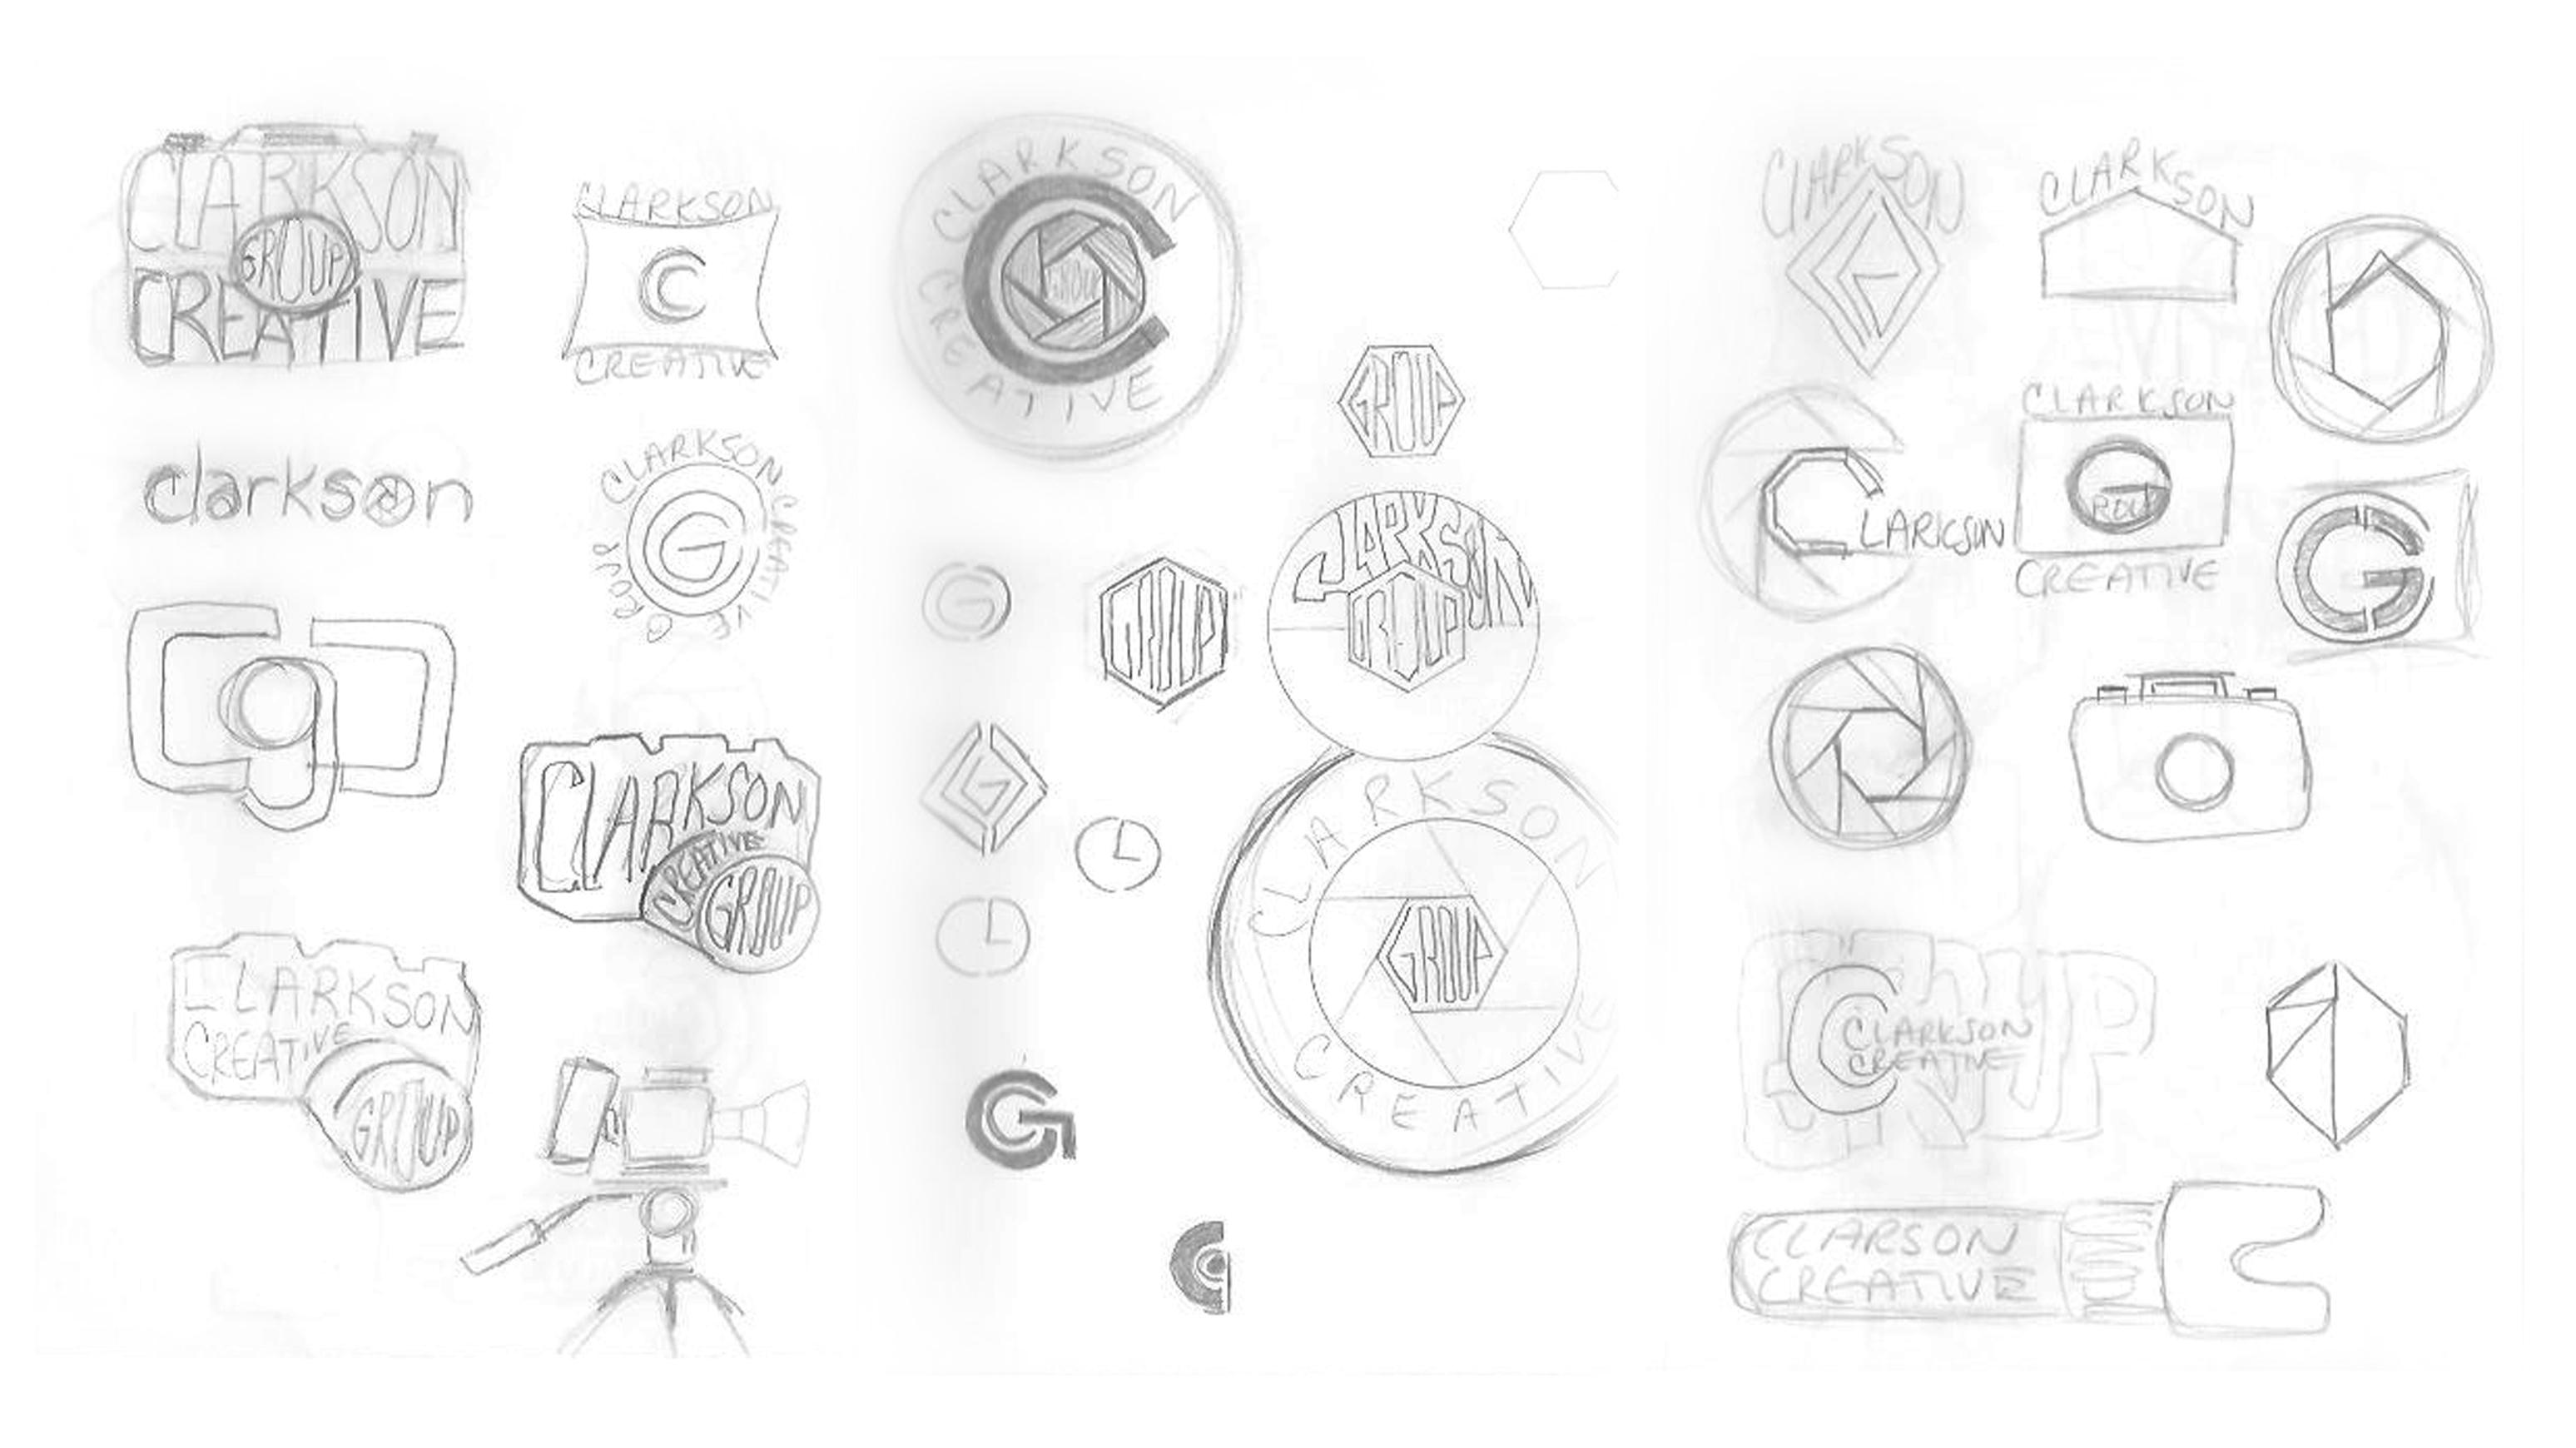 CCG Sketches - image 1 - student project